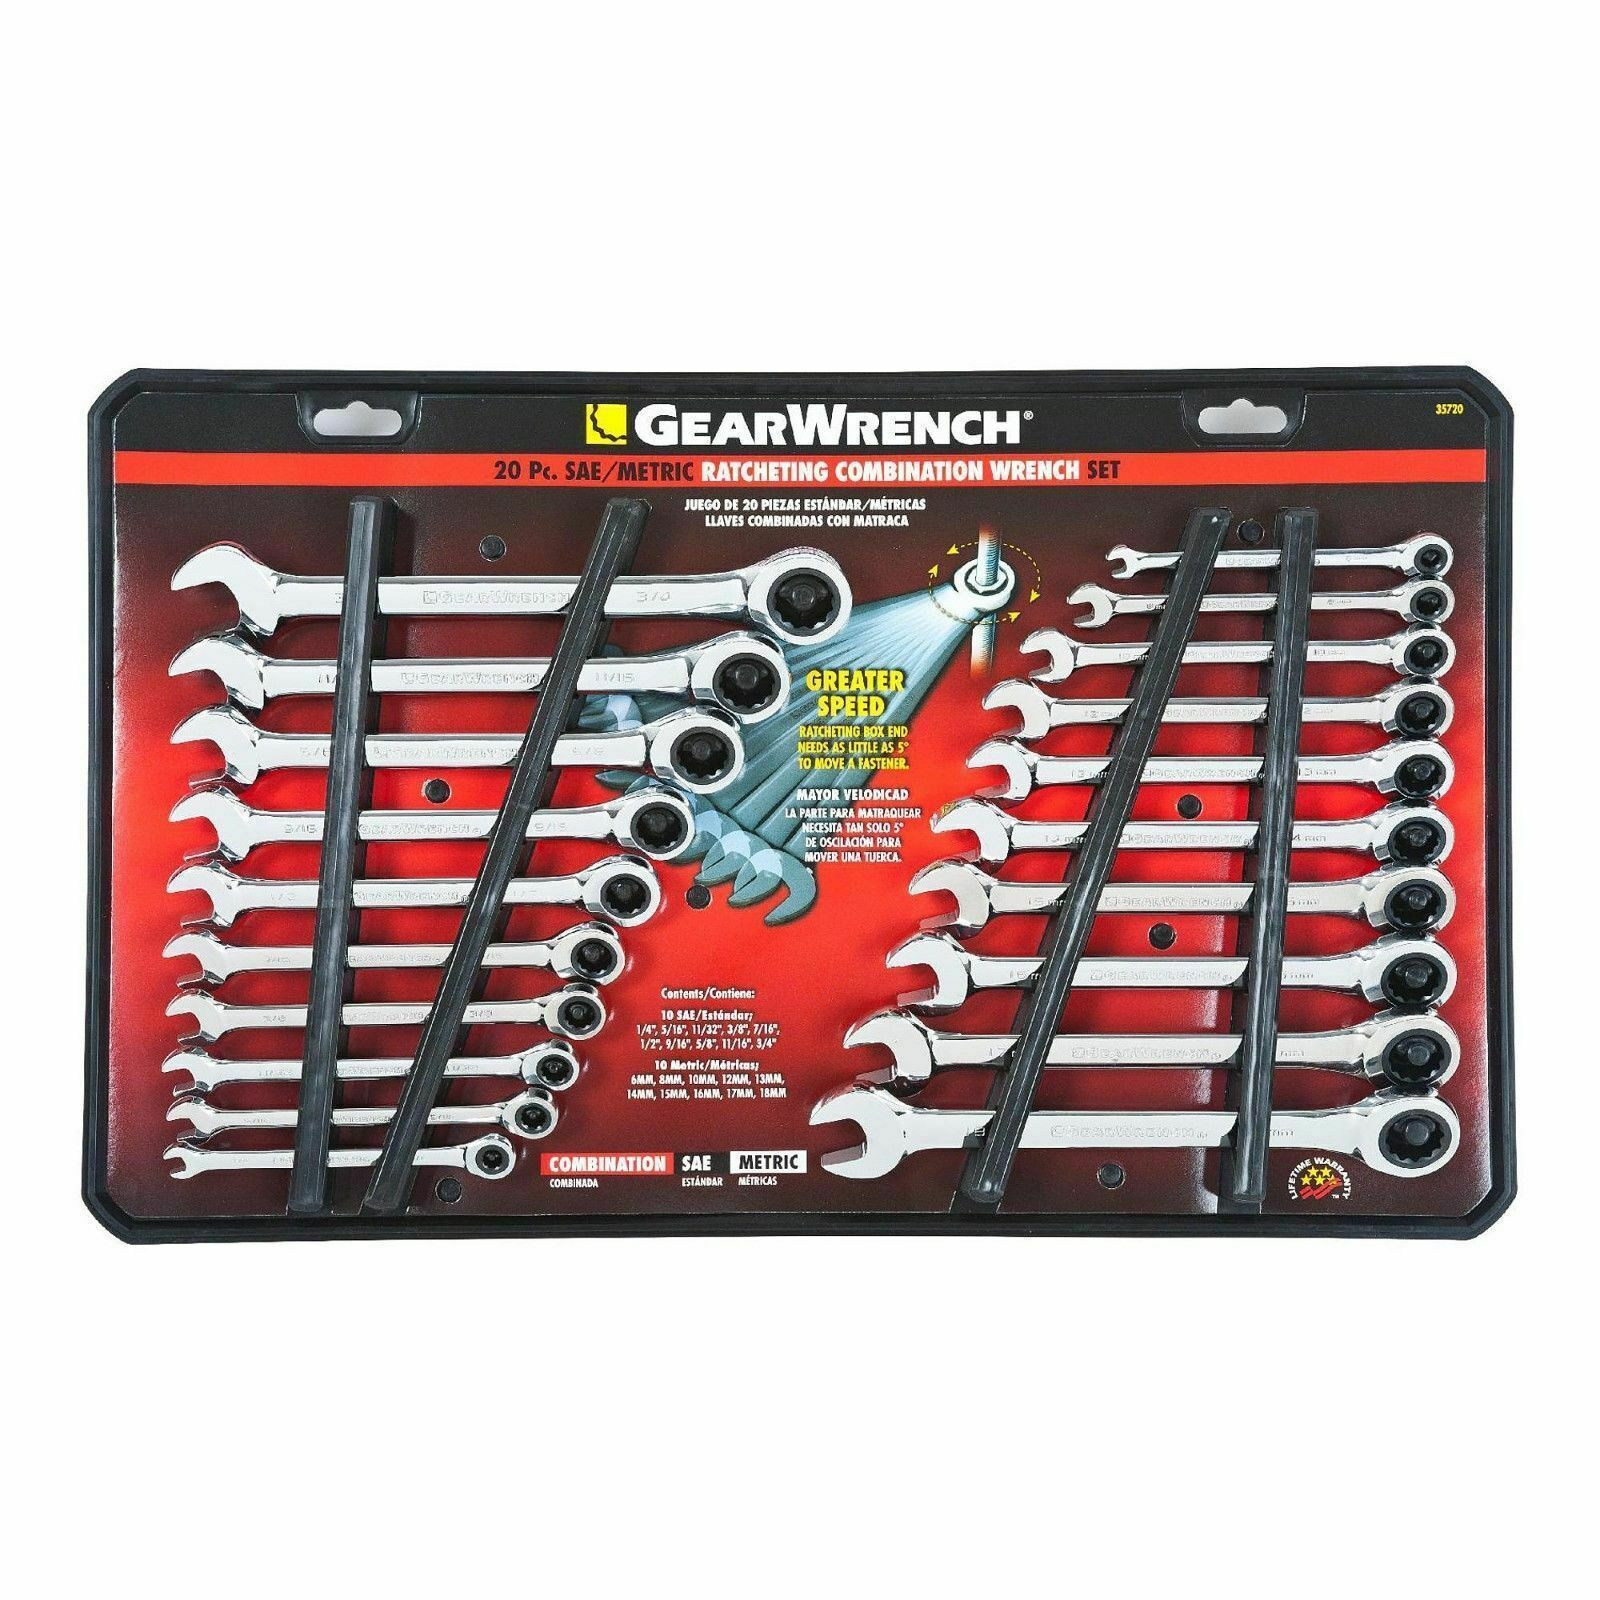 5//16 3//8 5//8 11//16 1//2 7//16 Wrench Set SAE With Store and Go Rack Holder 9 Piece 3//4-1//4 5//16 3//8 7//16 1//2 9//16 5//8 11//16 3//4 AJ/'s Wholesale chiws109s - 1//4 9//16